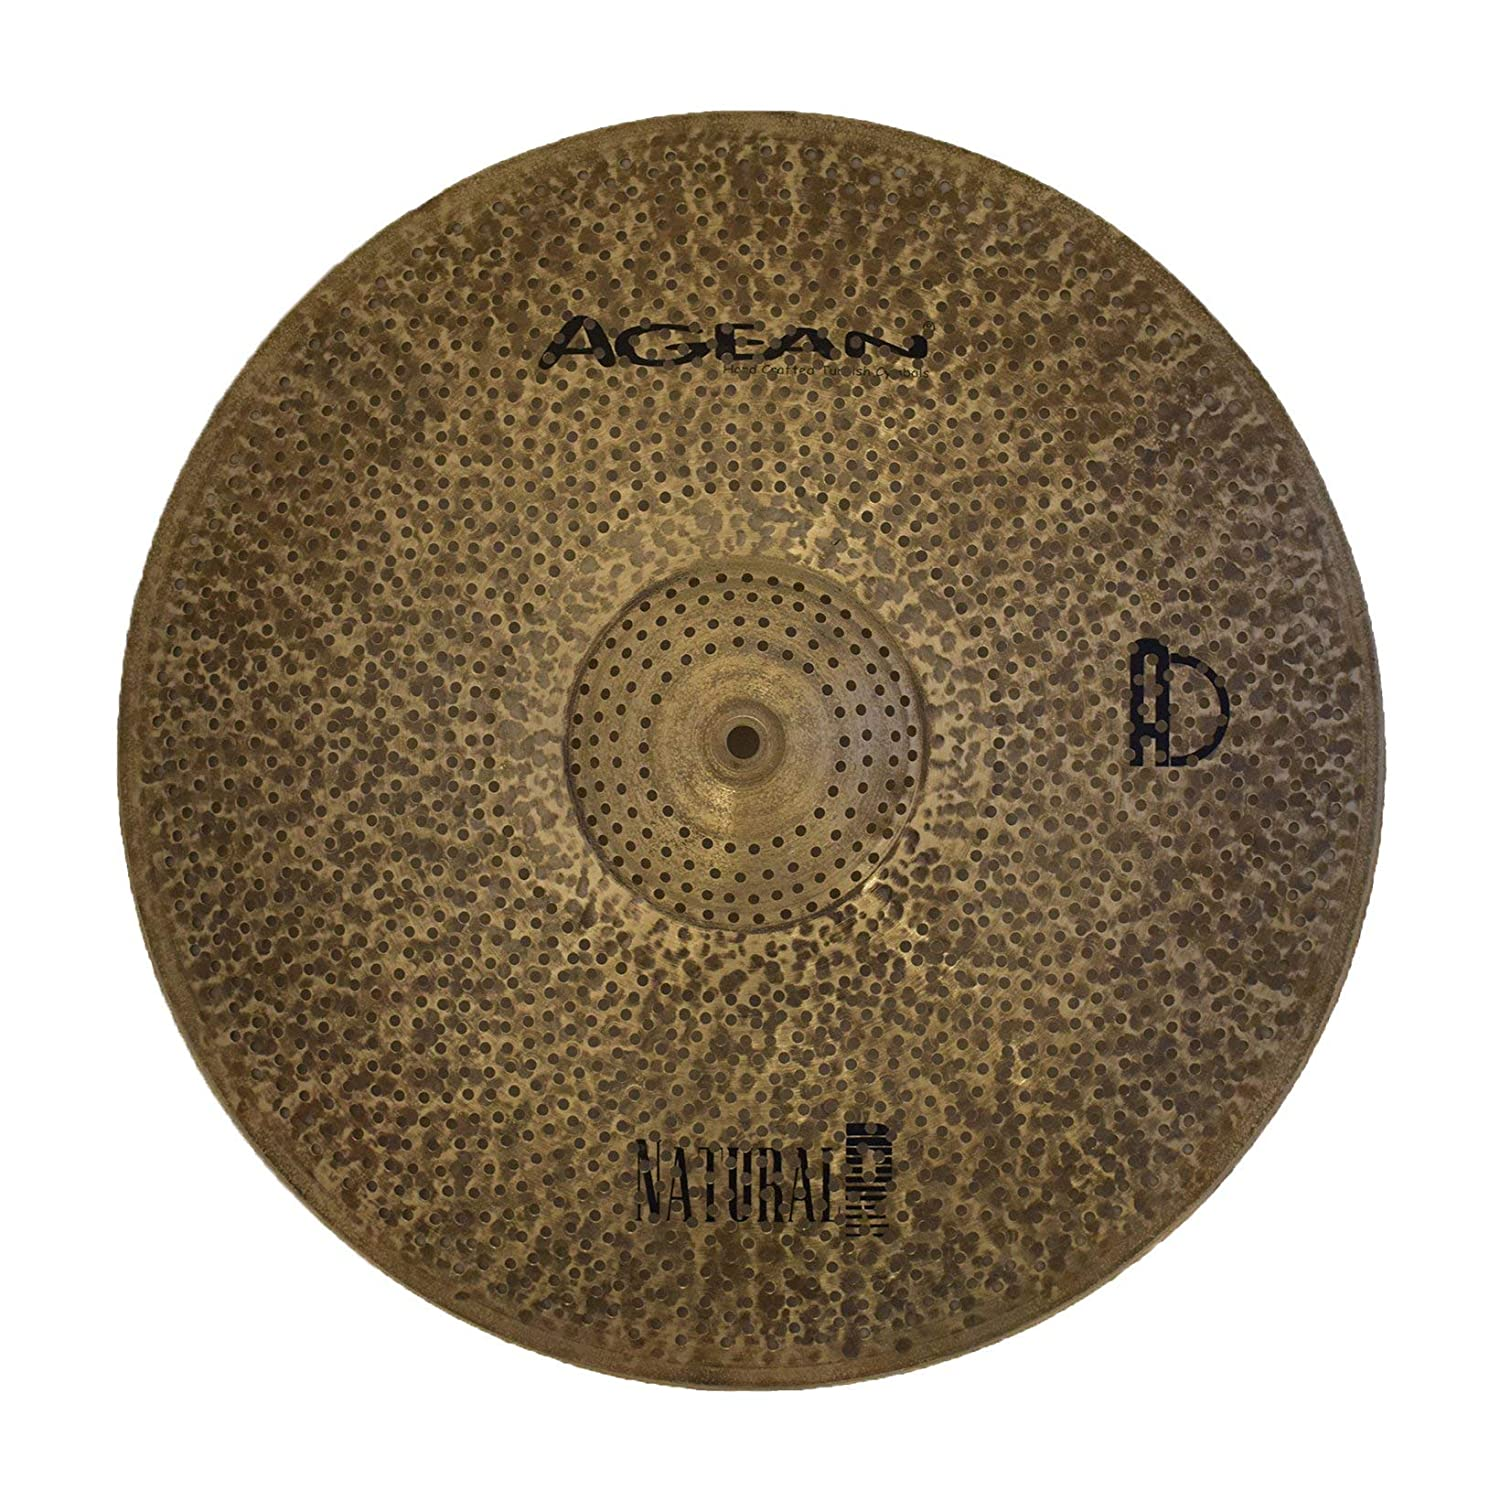 【売れ筋】 Agean Cymbals Natural B07NCWFG5N R-Series 18-inch Agean Low Volume Volume Crash B07NCWFG5N, GOODTILESHOPグッドタイルショップ:b03946a1 --- a0267596.xsph.ru